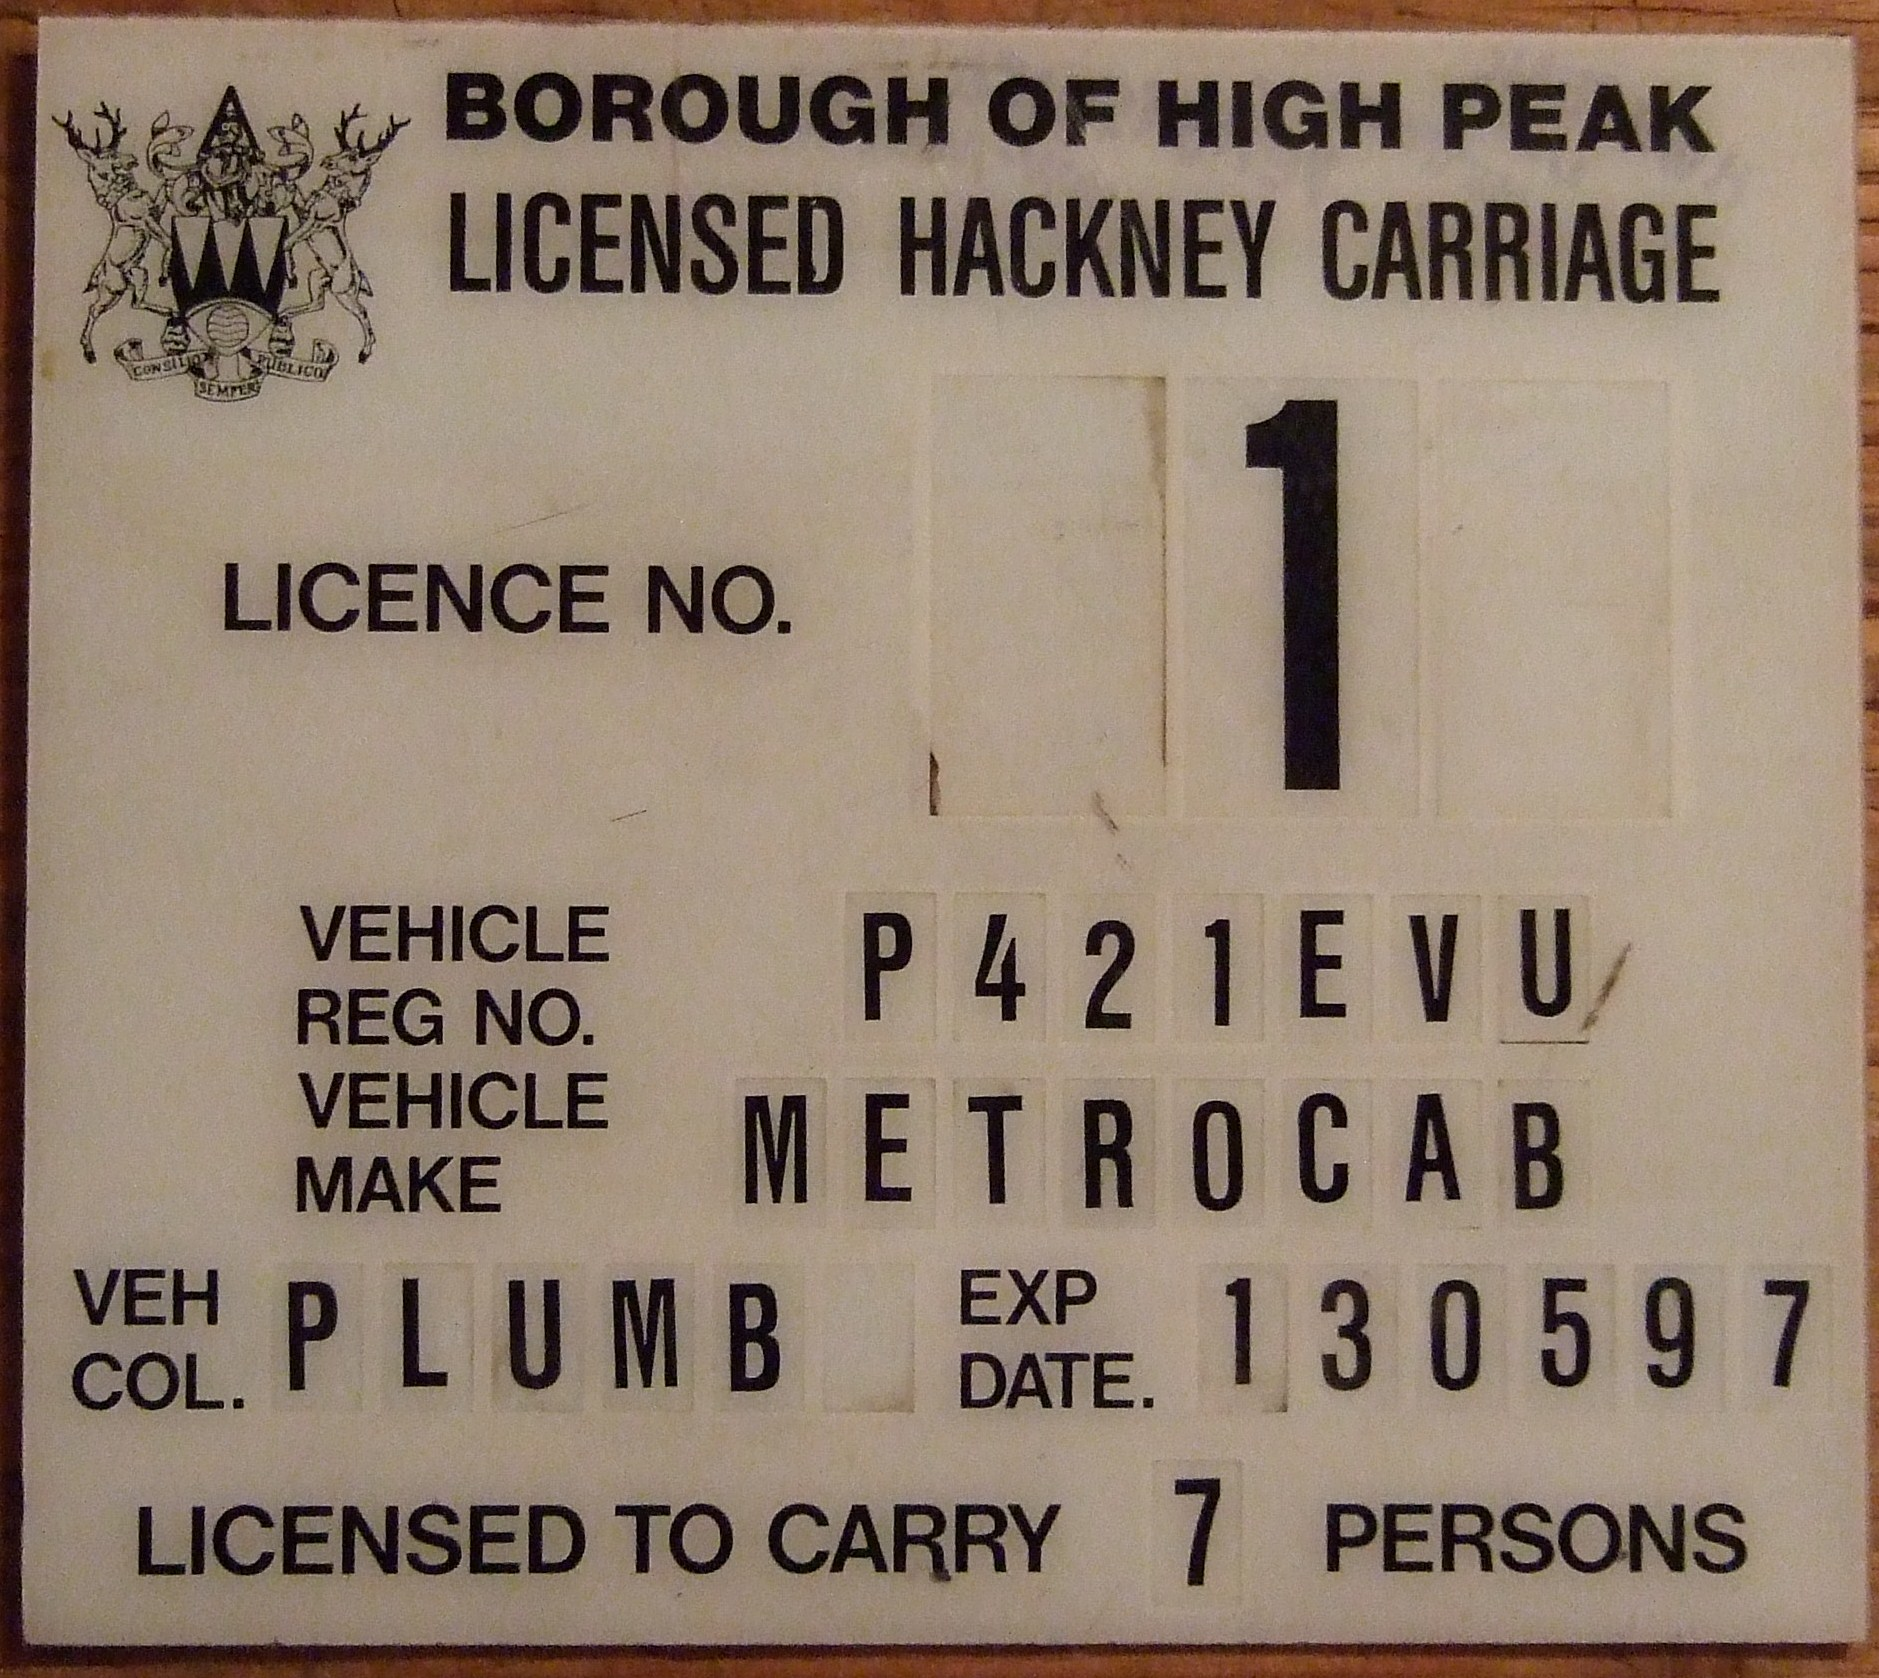 High Peak BC Consultation on Hackney Carriage - Private Hire Licensing Policy